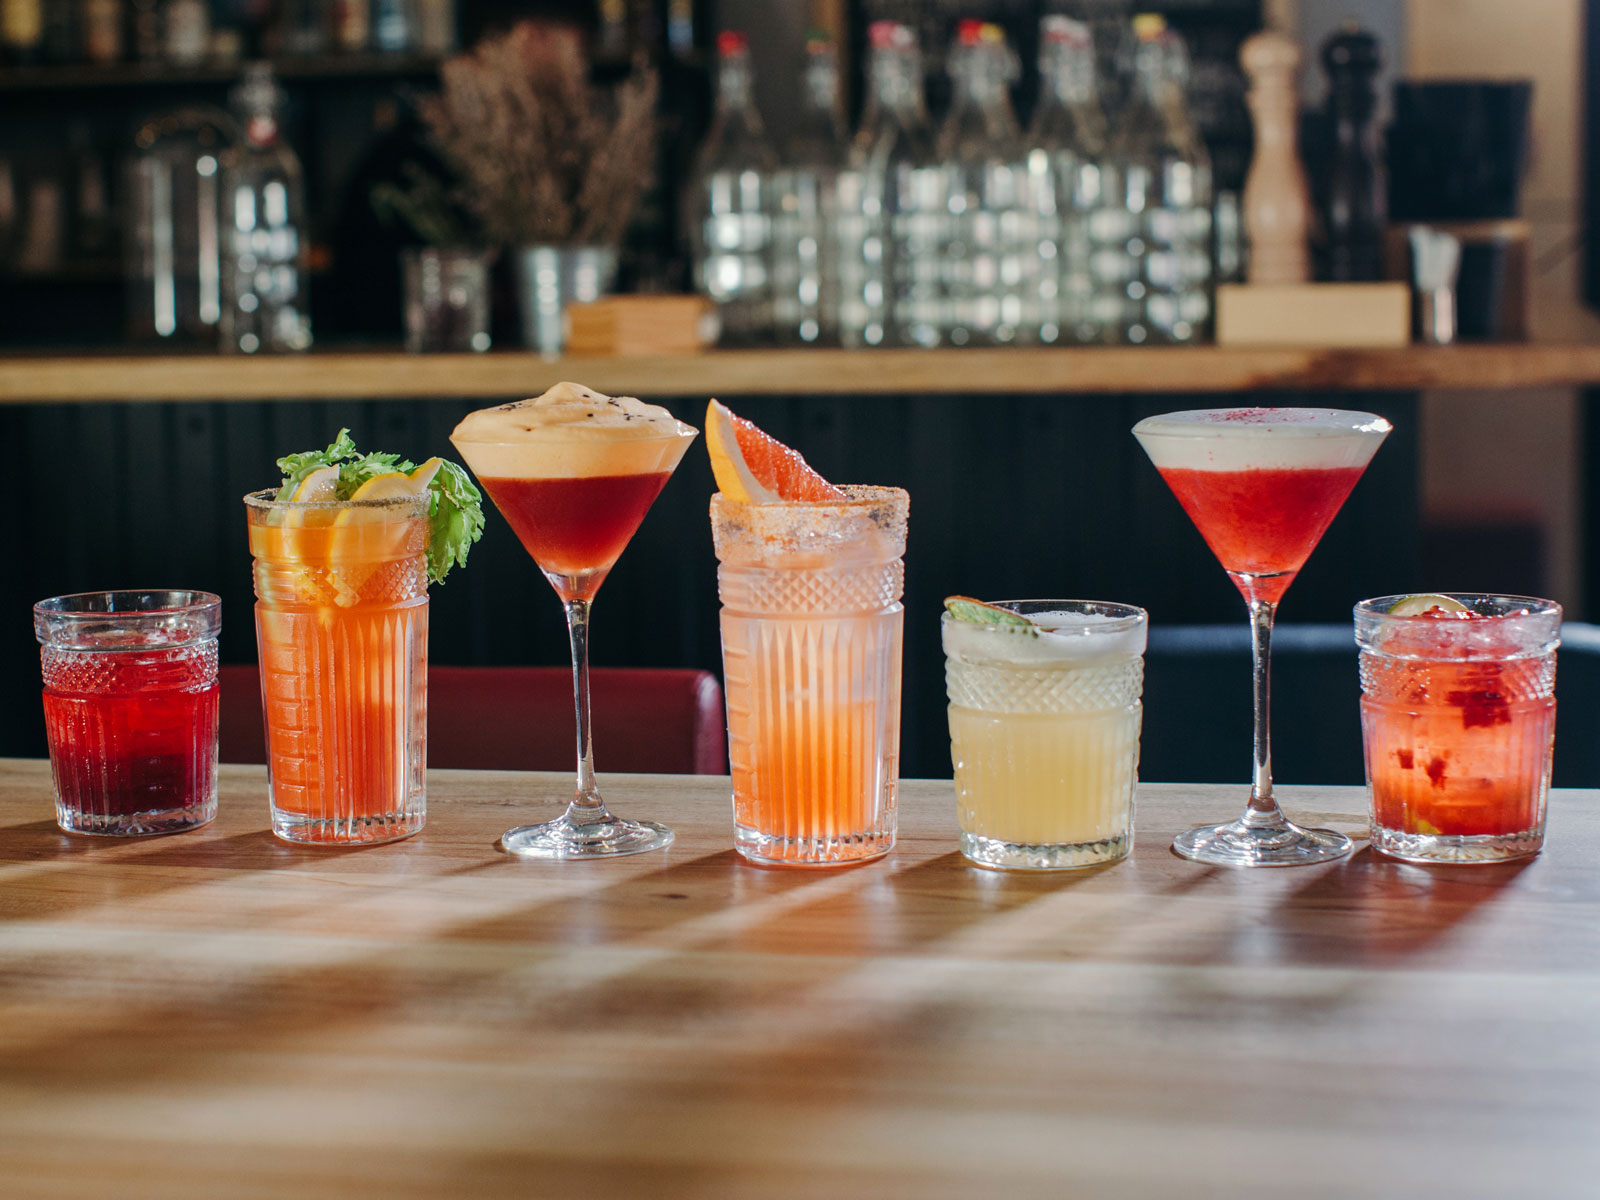 The Most Popular All-Day Cocktails, According to Nielsen